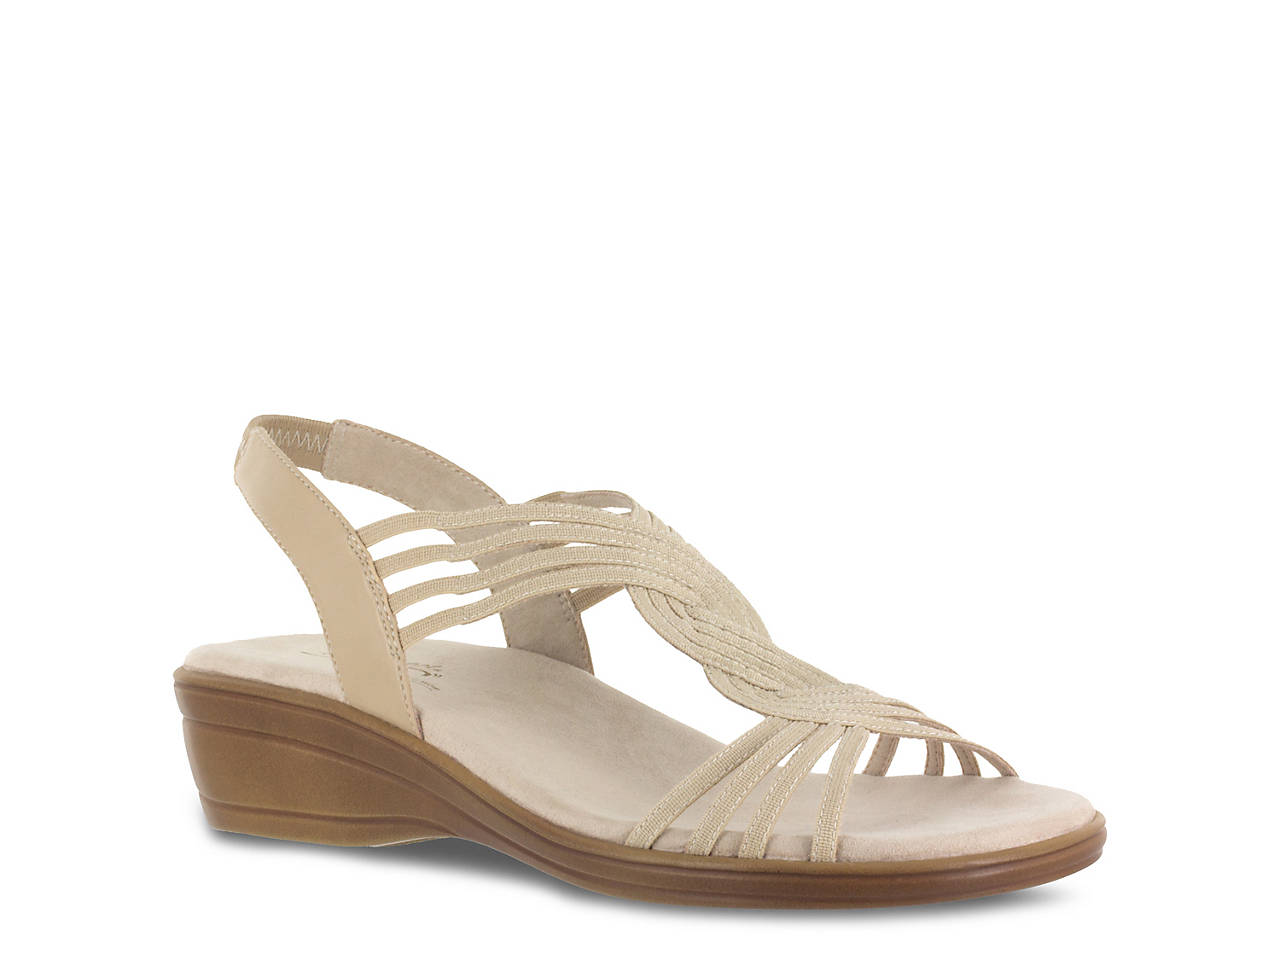 Easy Street Natara Women's ... Sandals RxN8SRX